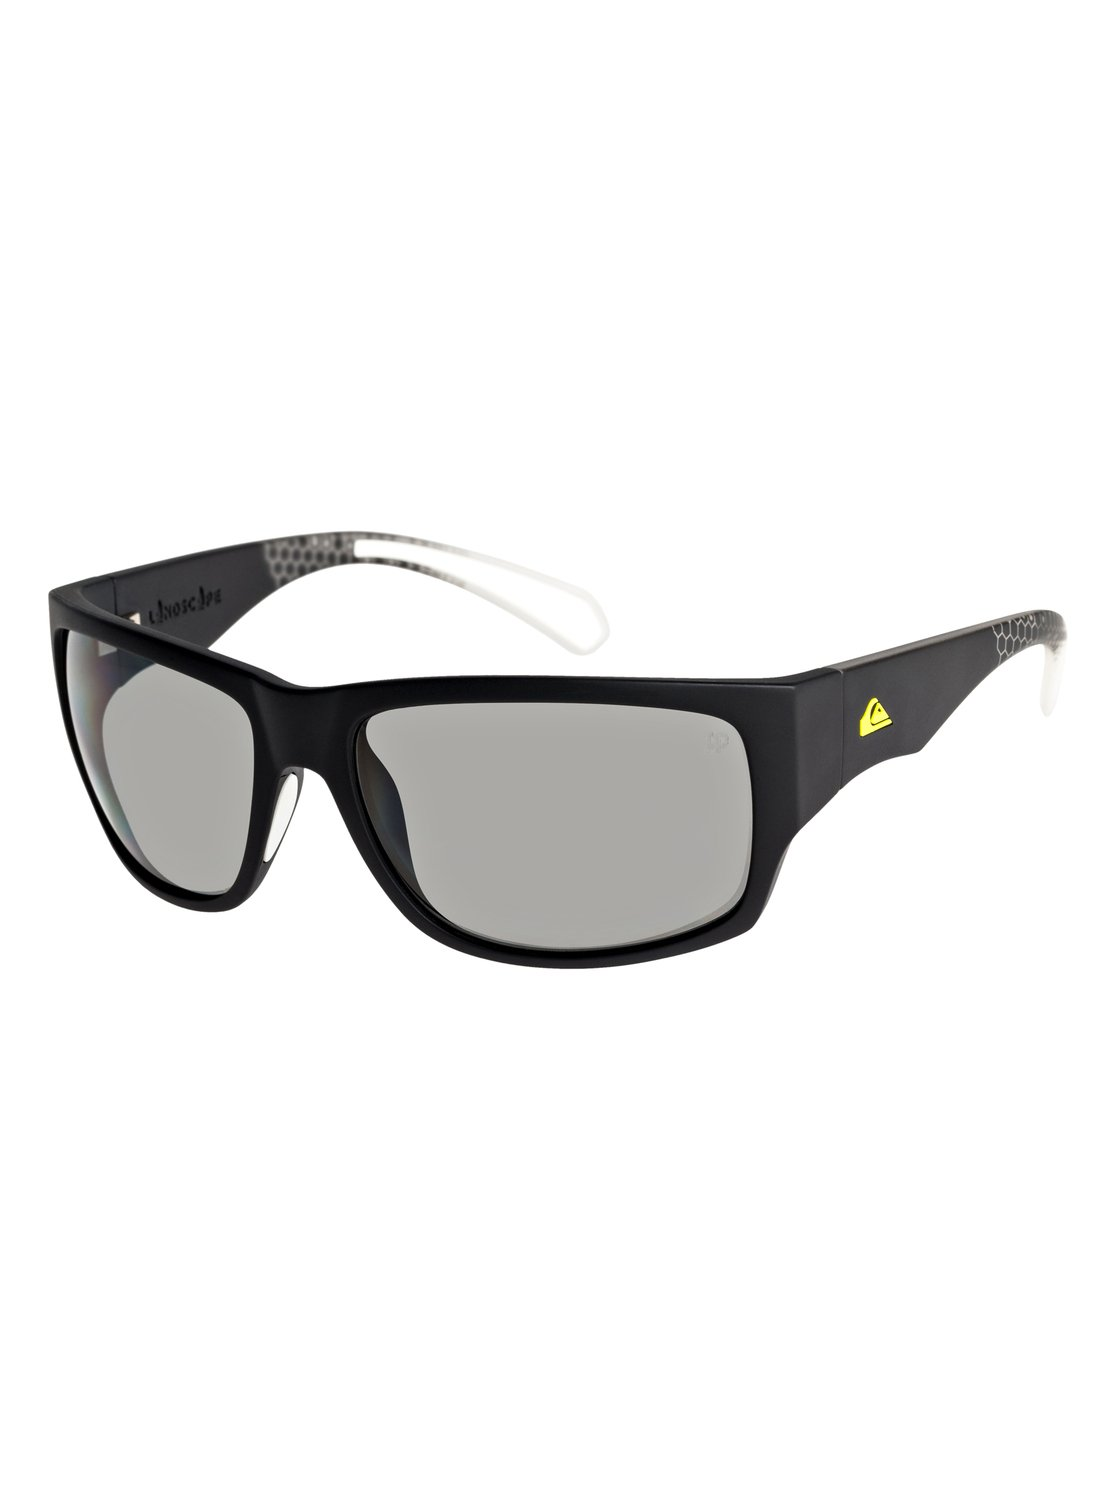 Landscape - Polarized Sunglasses